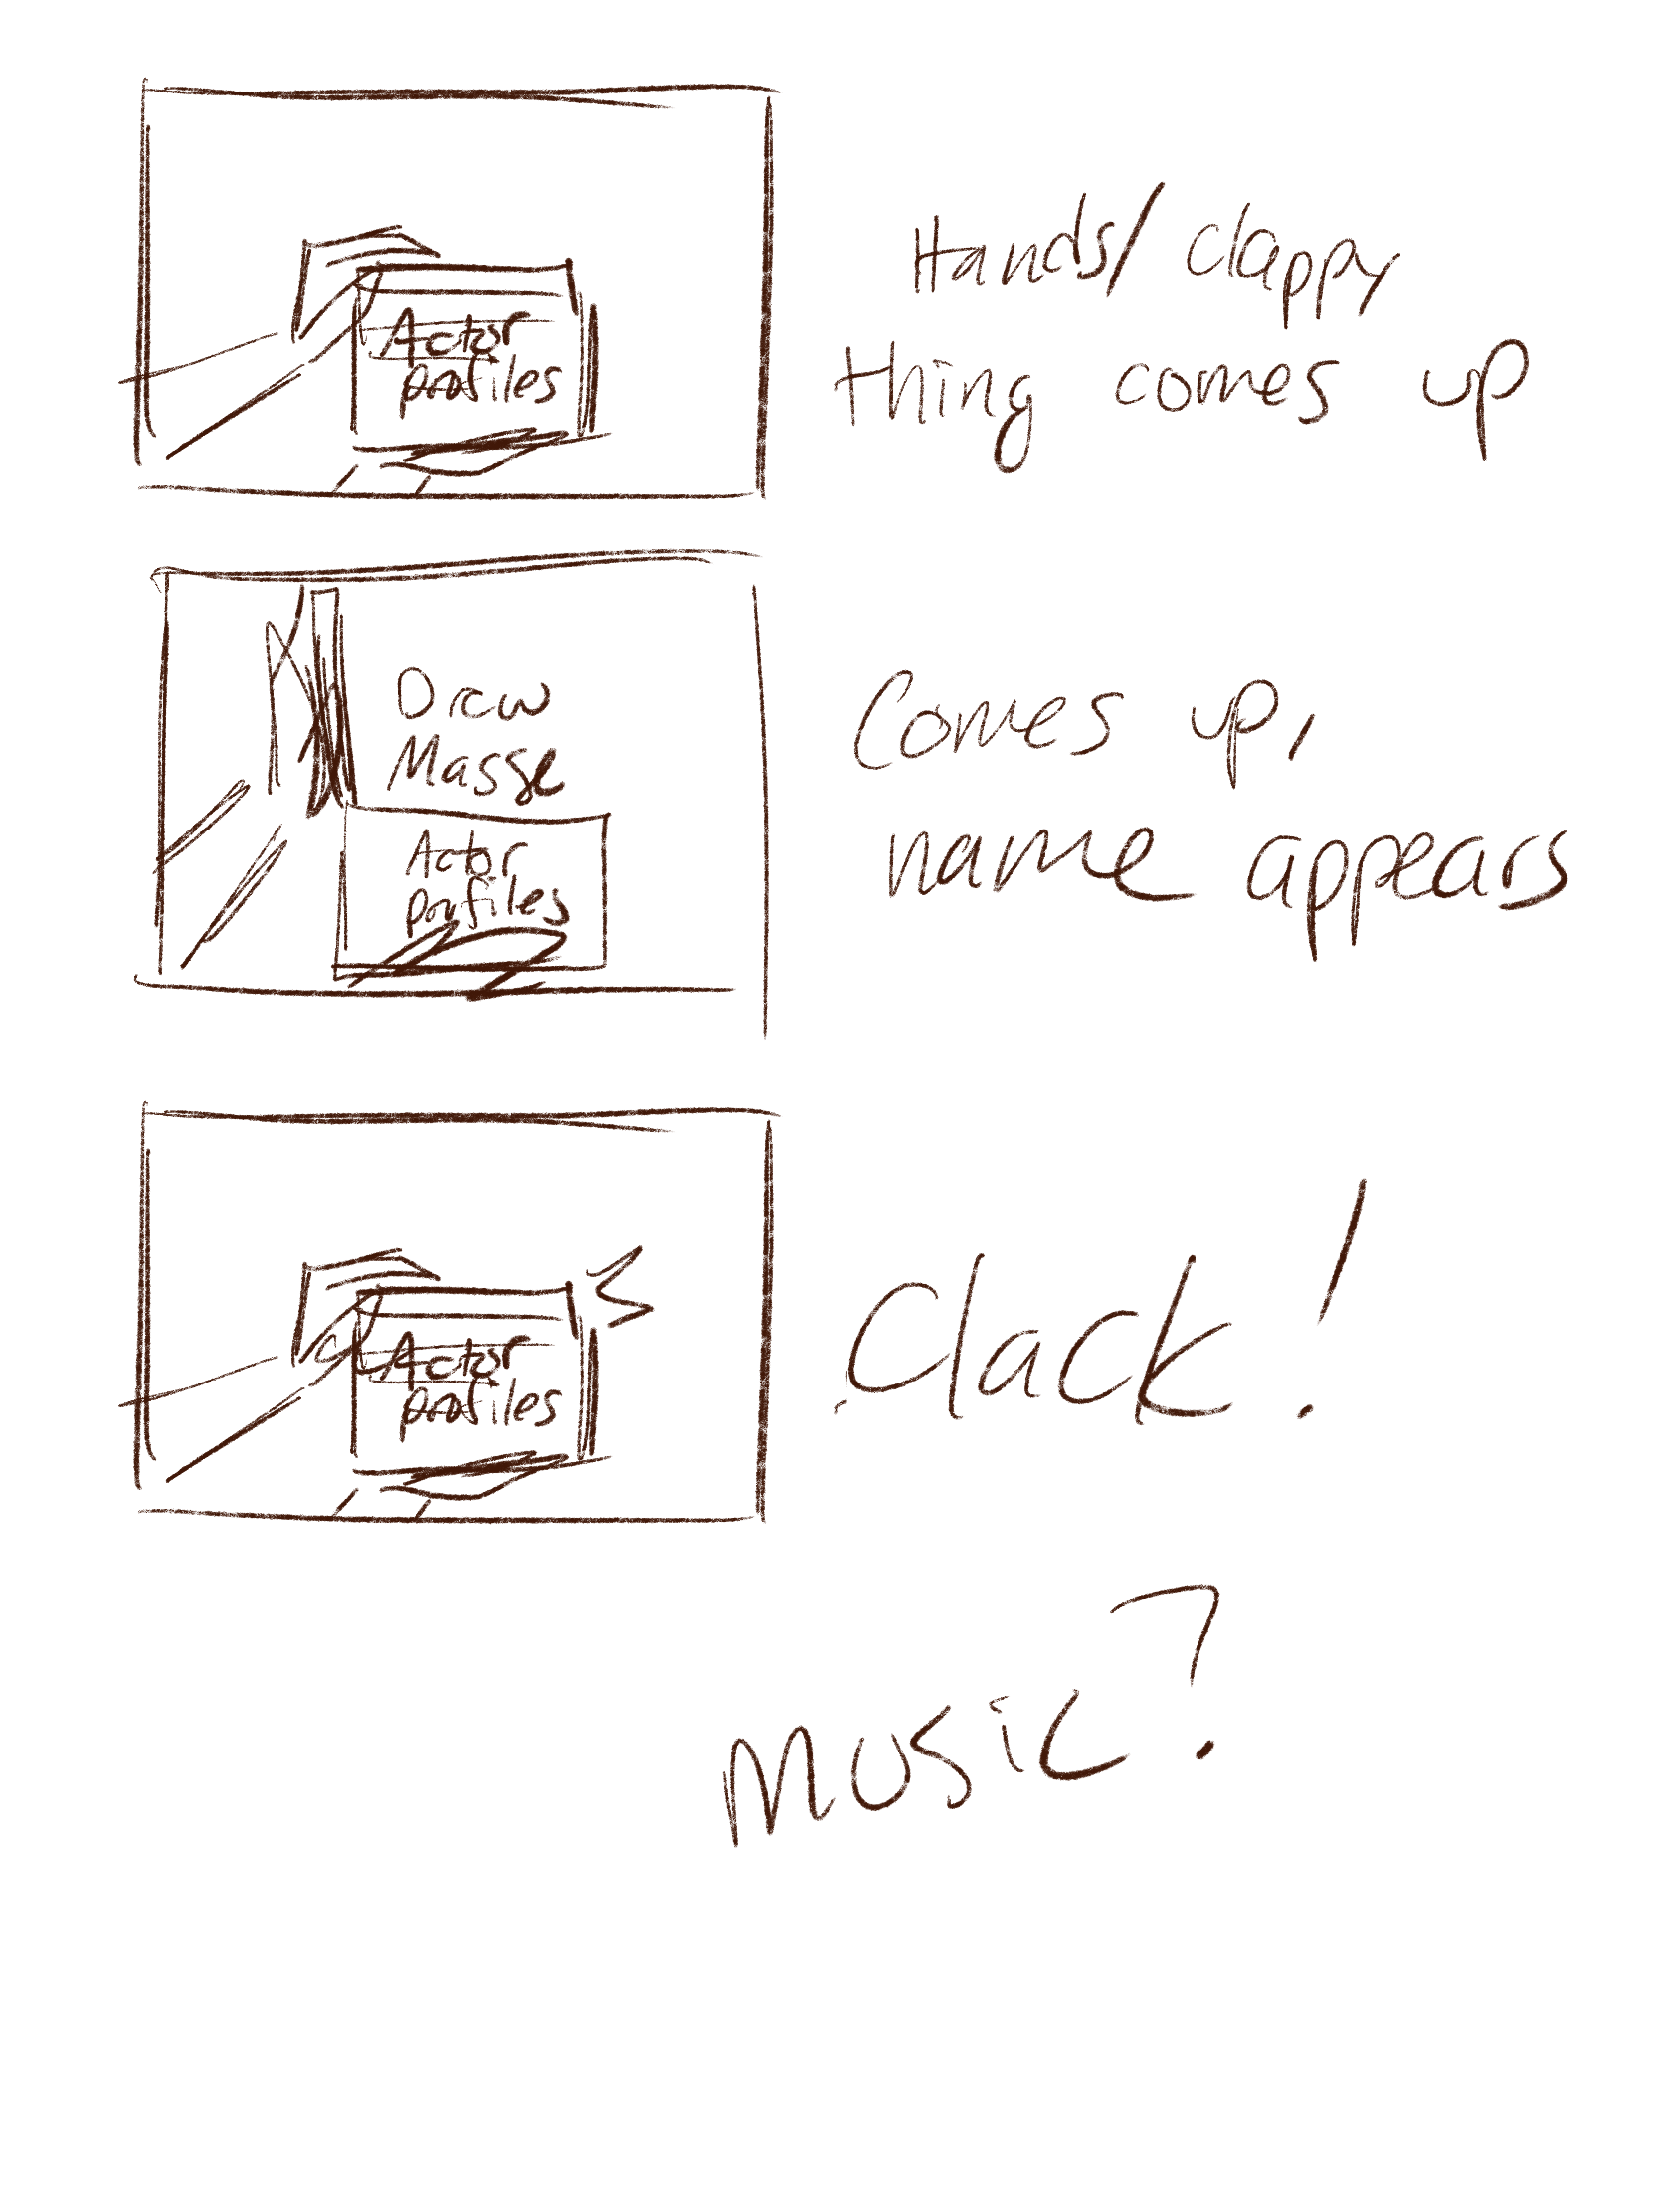 My first sketches of the opening title animation.